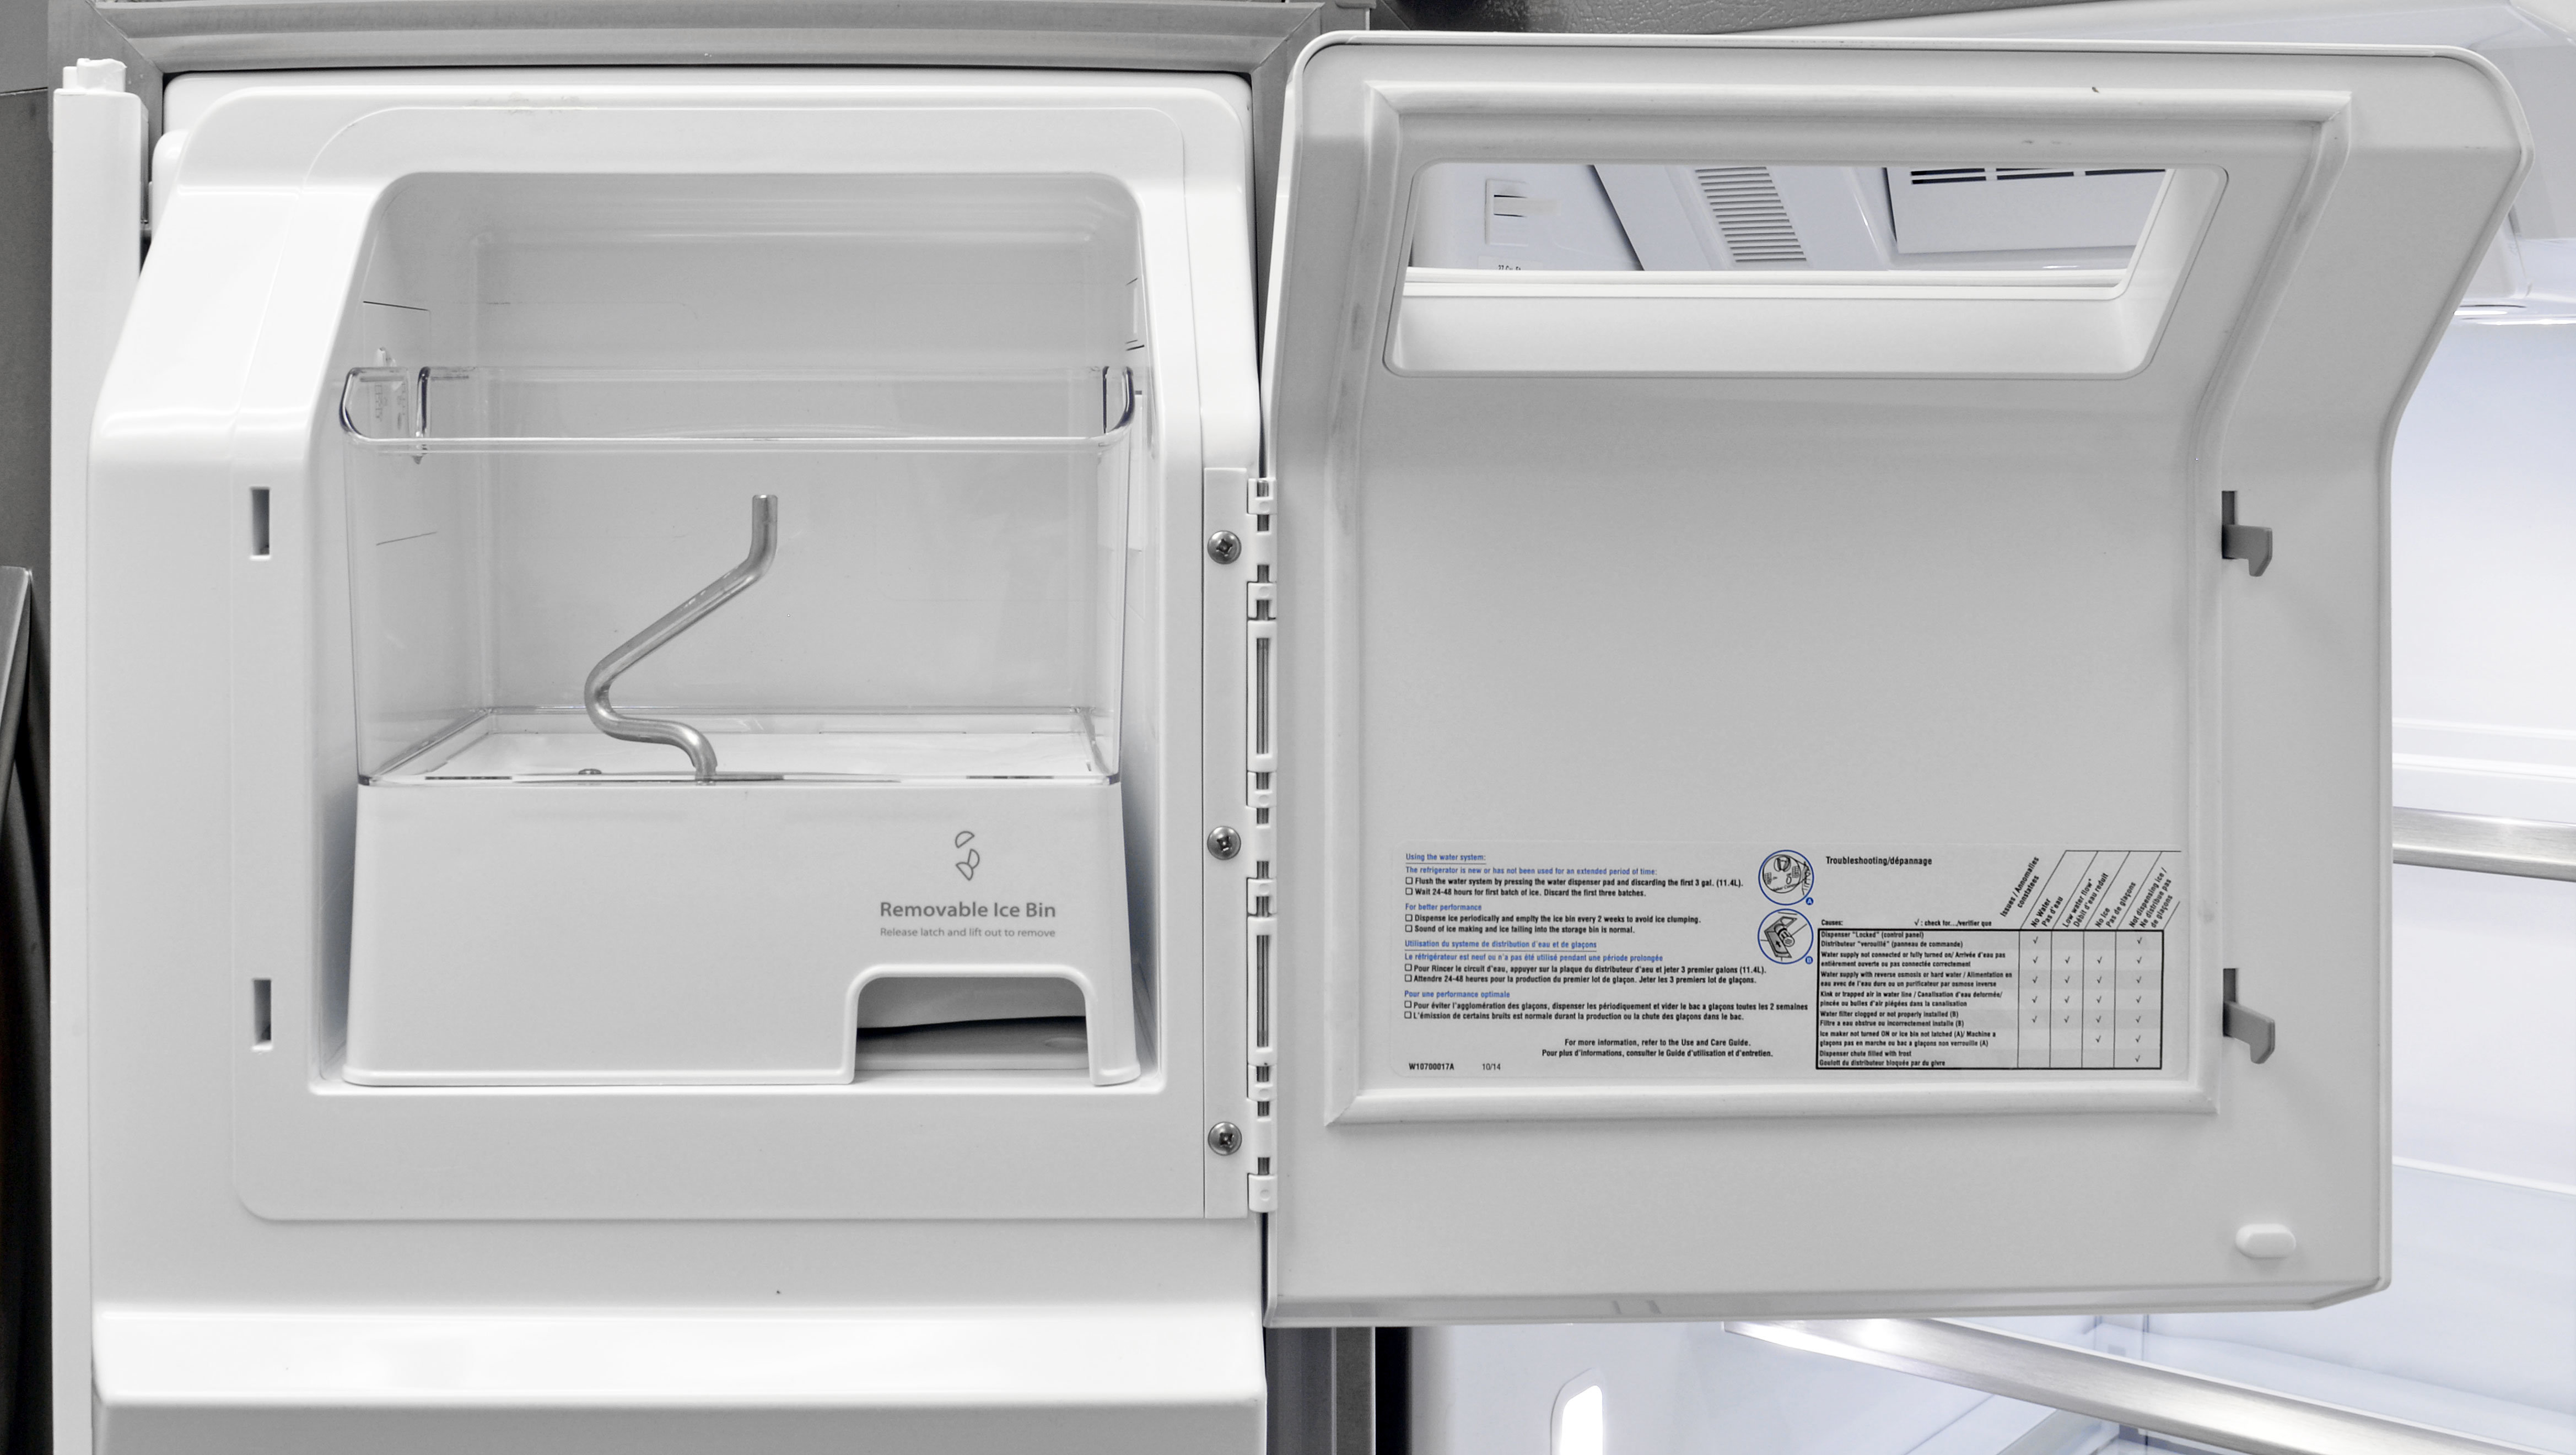 Whirlpool white ice appliances best buy - The Whirlpool Wrf757sdem S Roomy Door Mounted Ice Maker Holds Plenty Of Cubes And Is